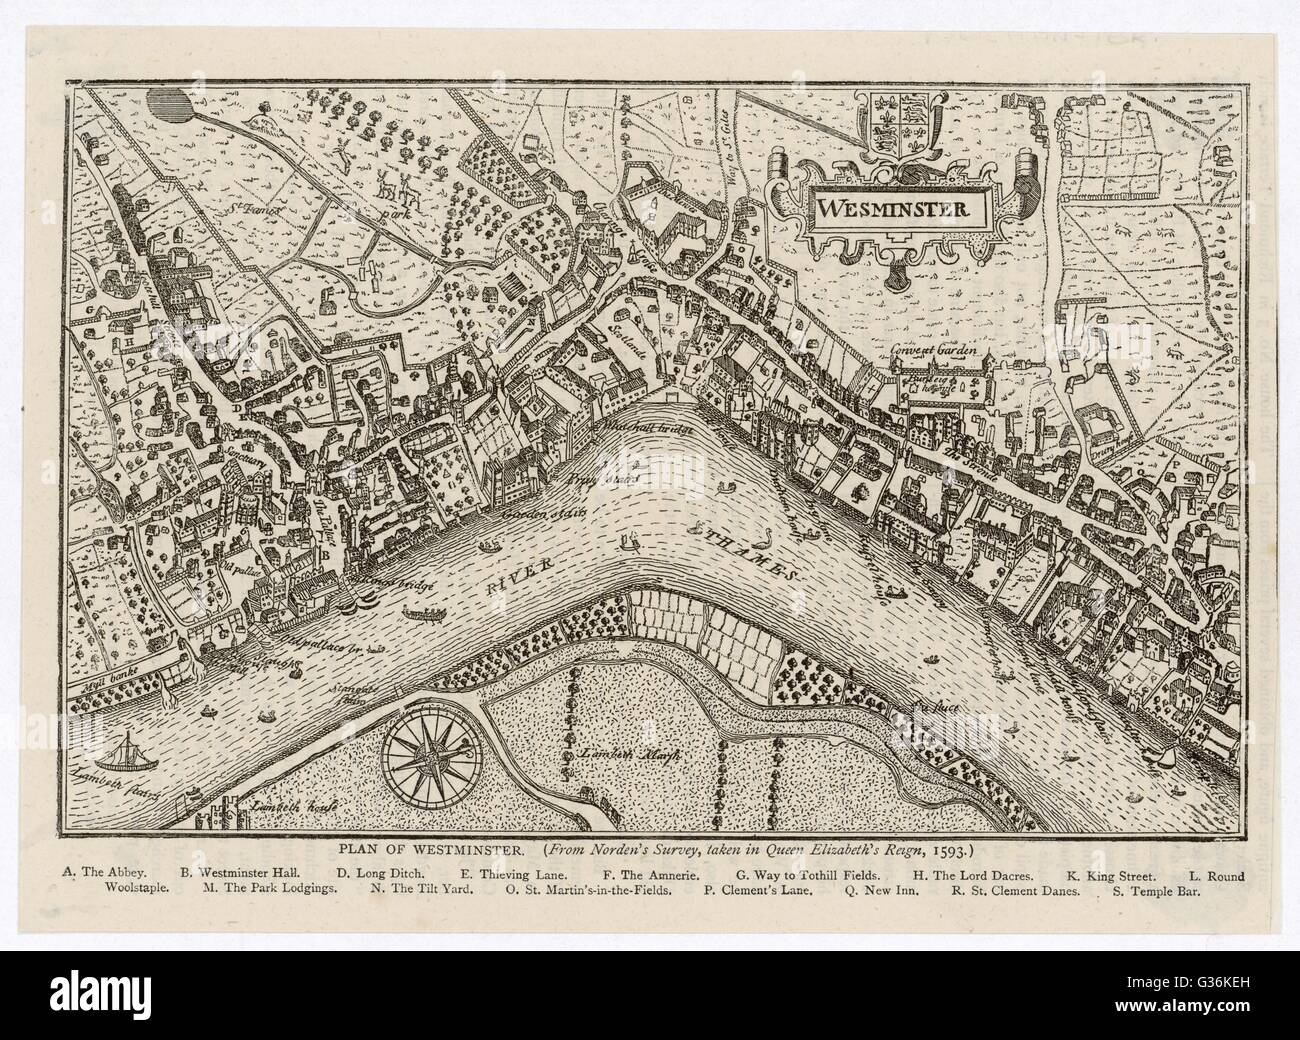 Map of Westminster, London, 1593     Date: 1593 - Stock Image